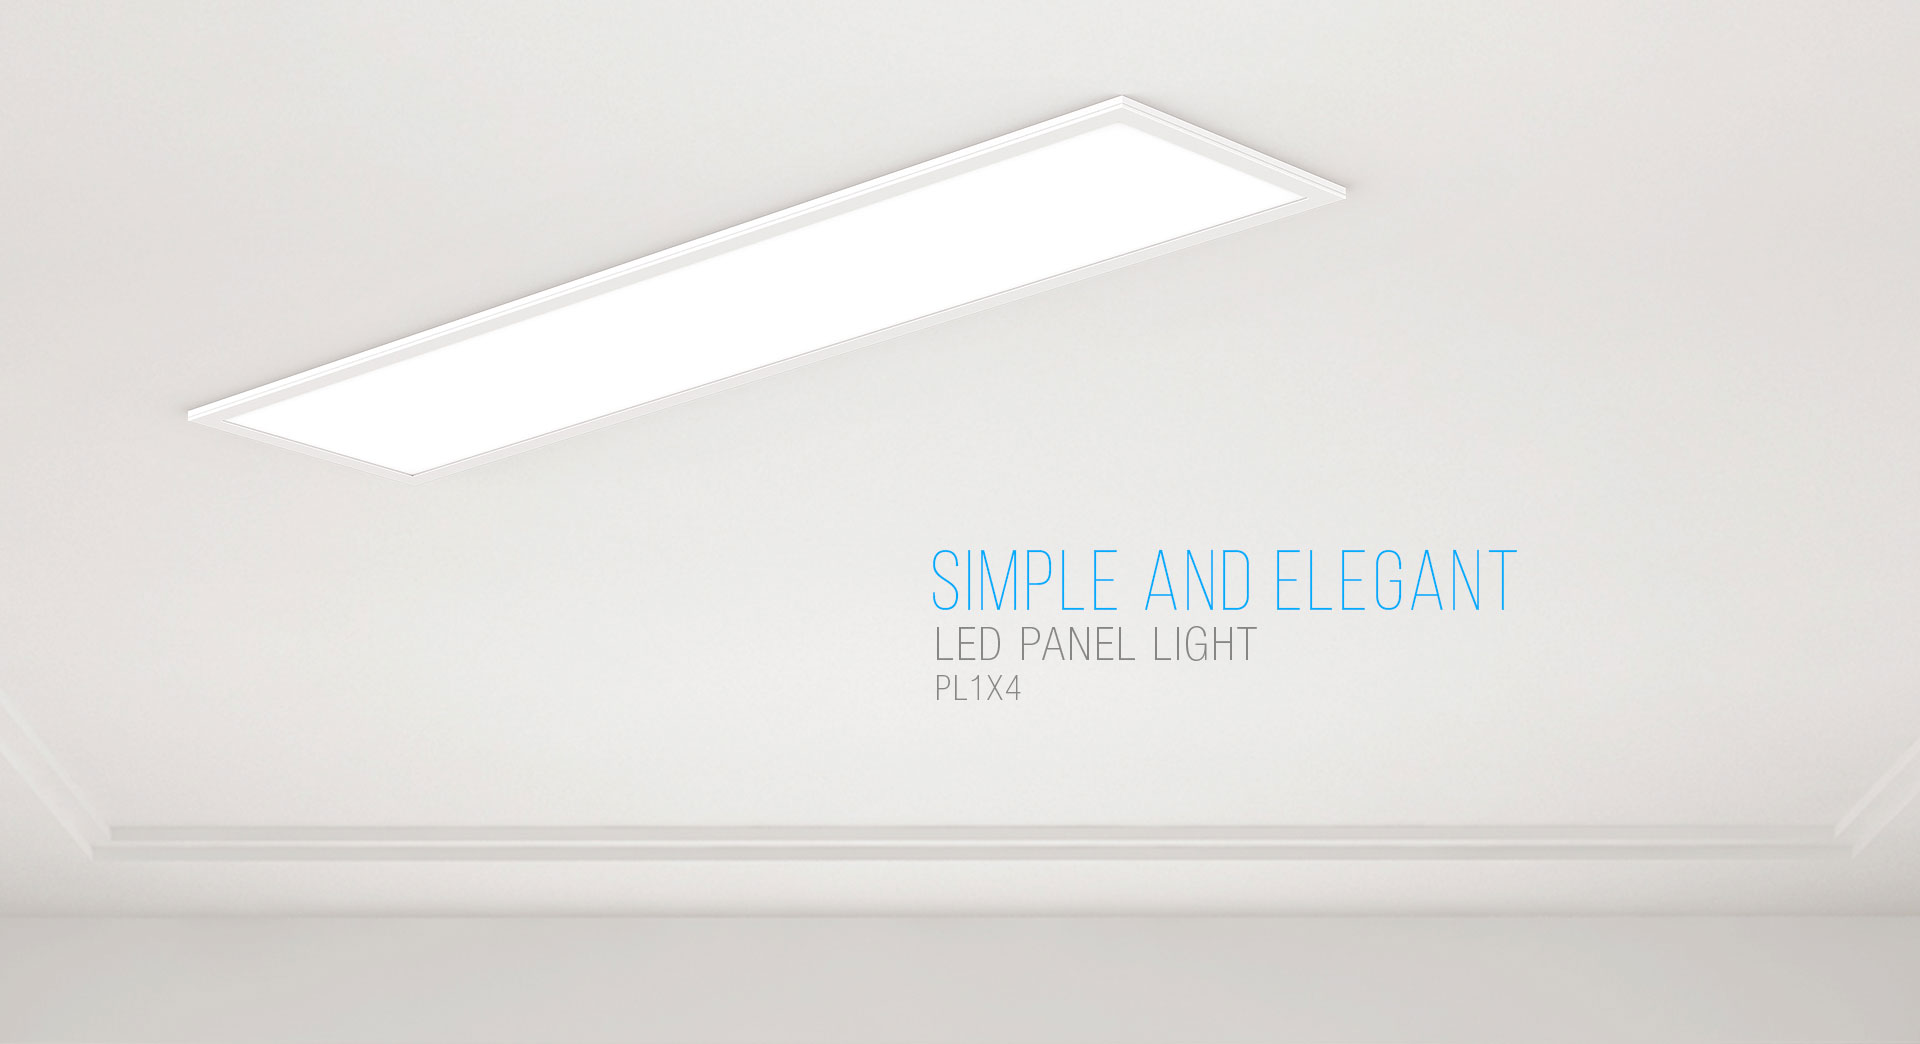 PL1x4 Commercial LED Panel Light_01